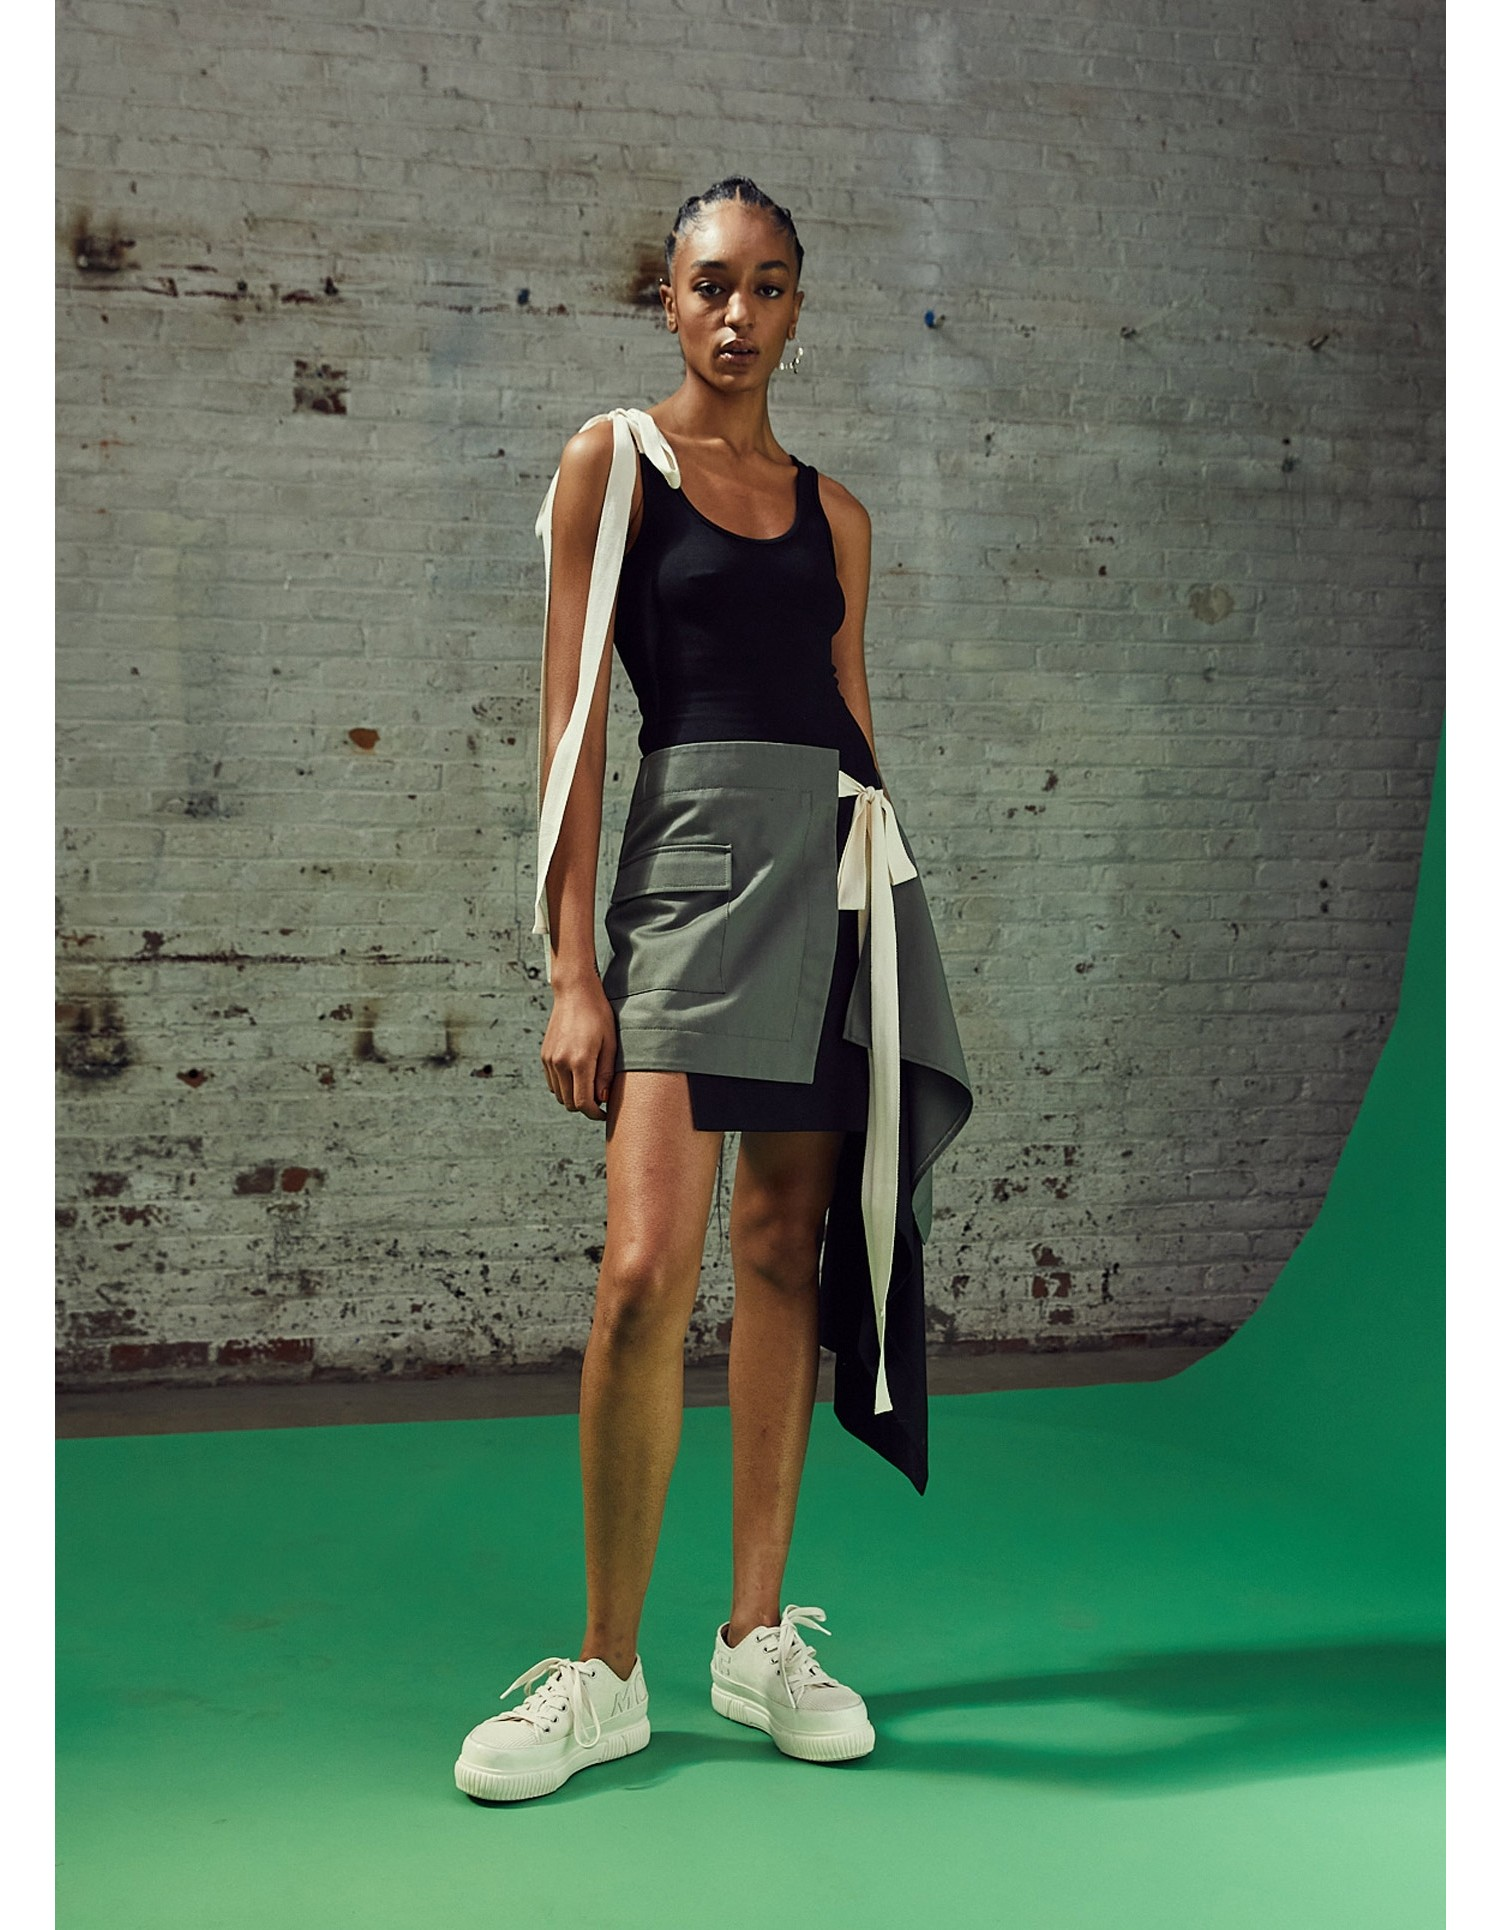 MONSE T-Skirt Dress in Black and Olive on Model Full Front View